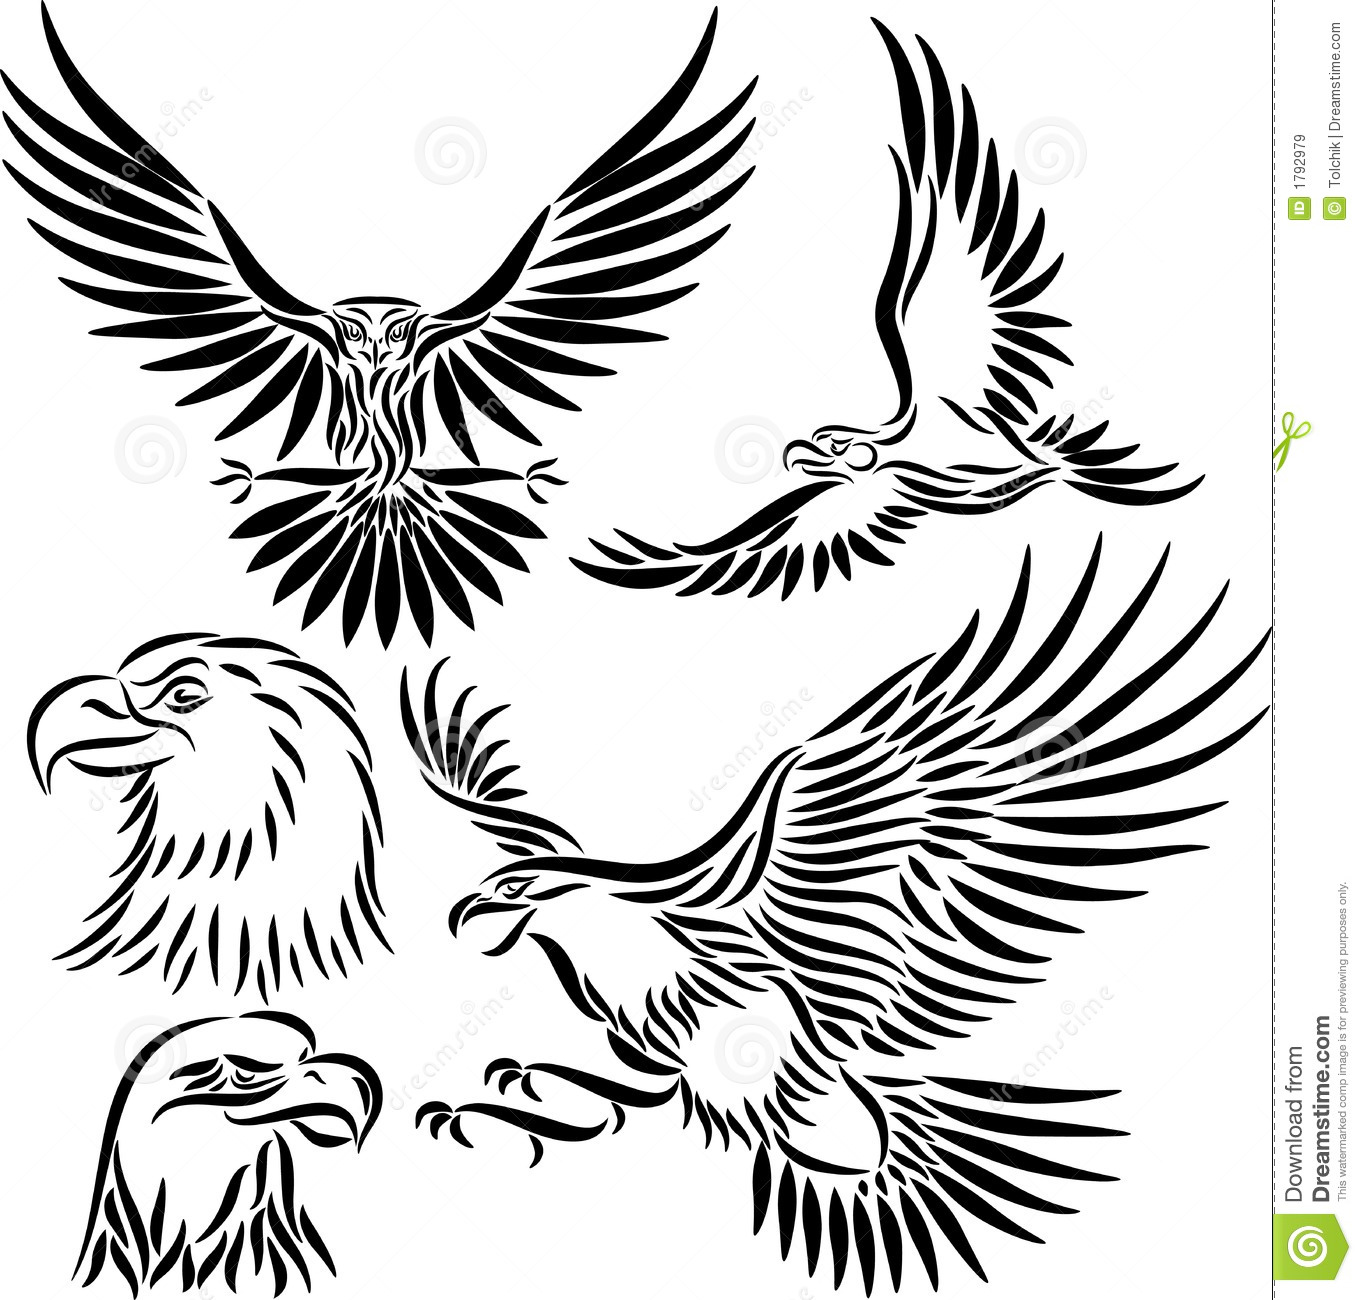 abstract vector eagle stock vector illustration of falcon 1792979. Black Bedroom Furniture Sets. Home Design Ideas